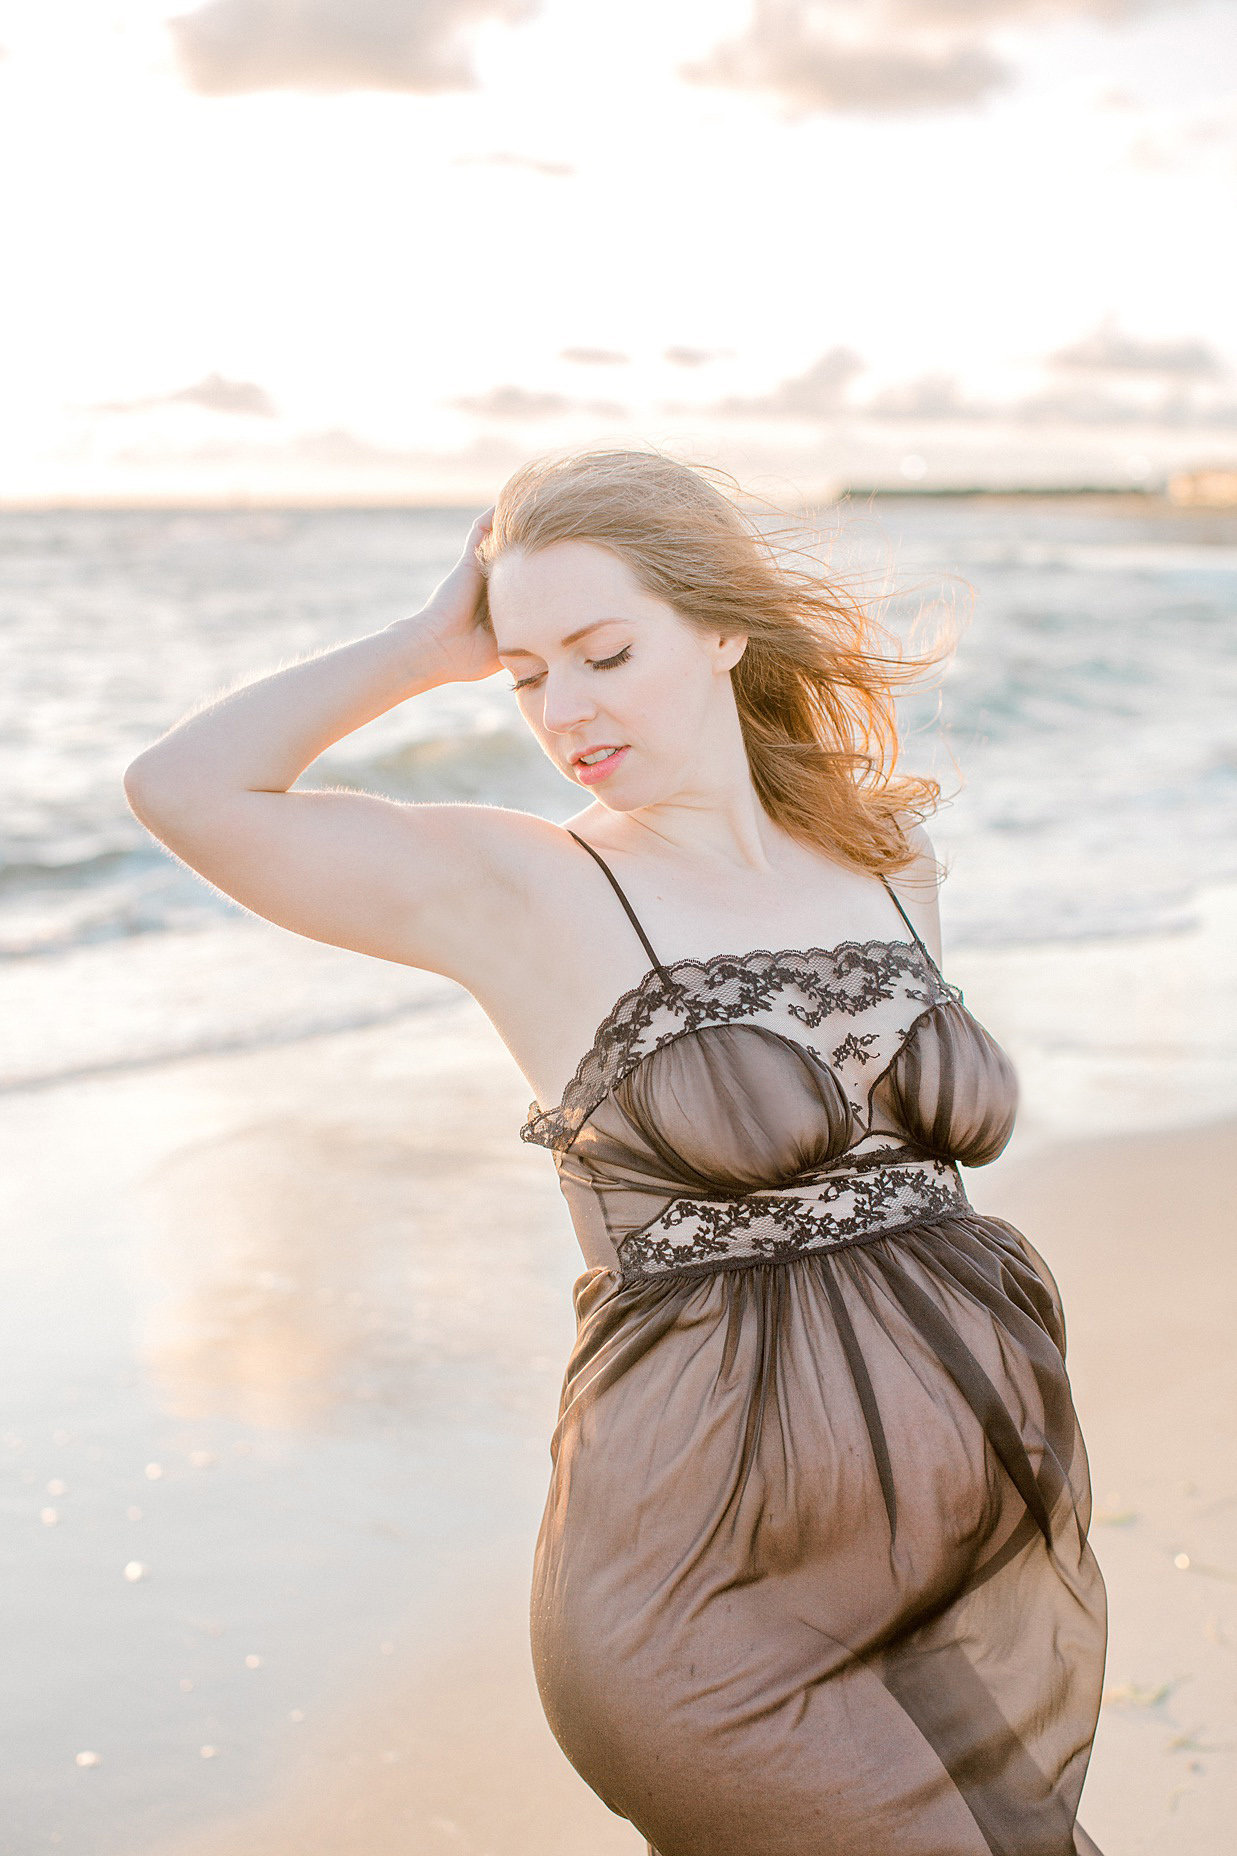 BL Sunrise Beach Maternity Boudoir Hampton Roads VA Norfolk Studio Photographer Yours Truly Portraiture-74